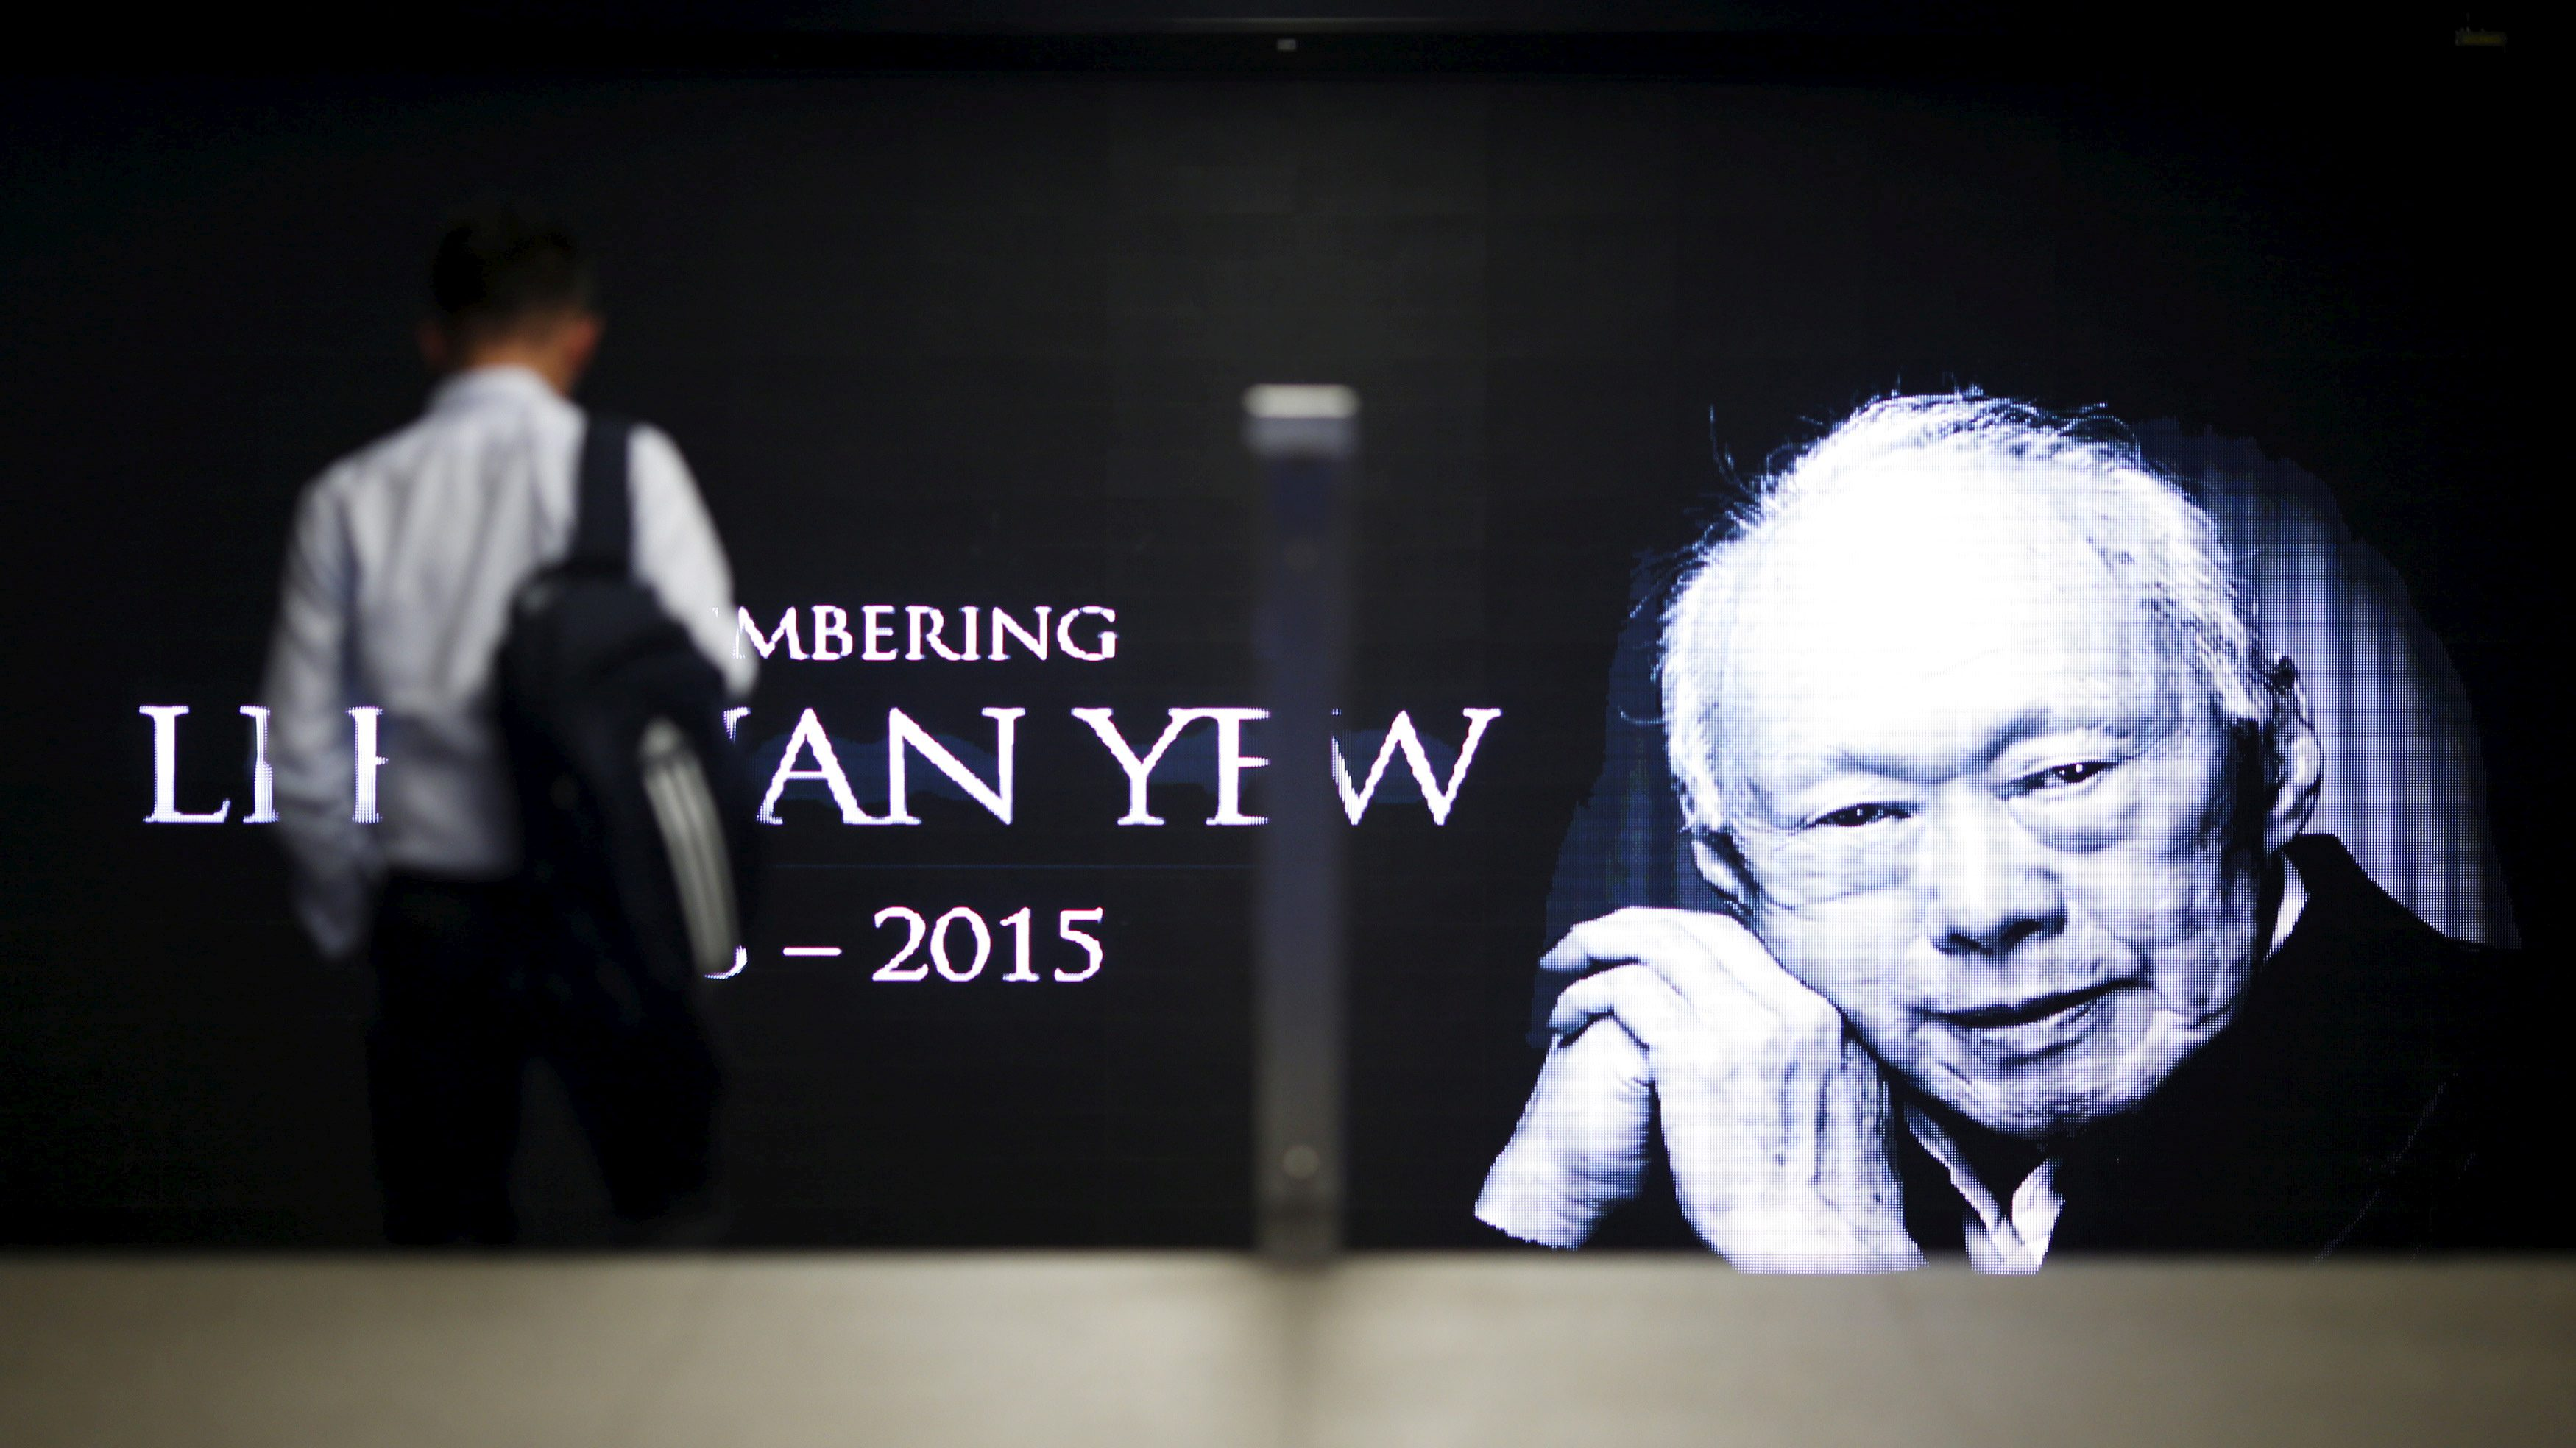 A commuter passes by a signboard bearing an image of the late first prime minister Lee Kuan Yew in a train station at the central business district in Singapore